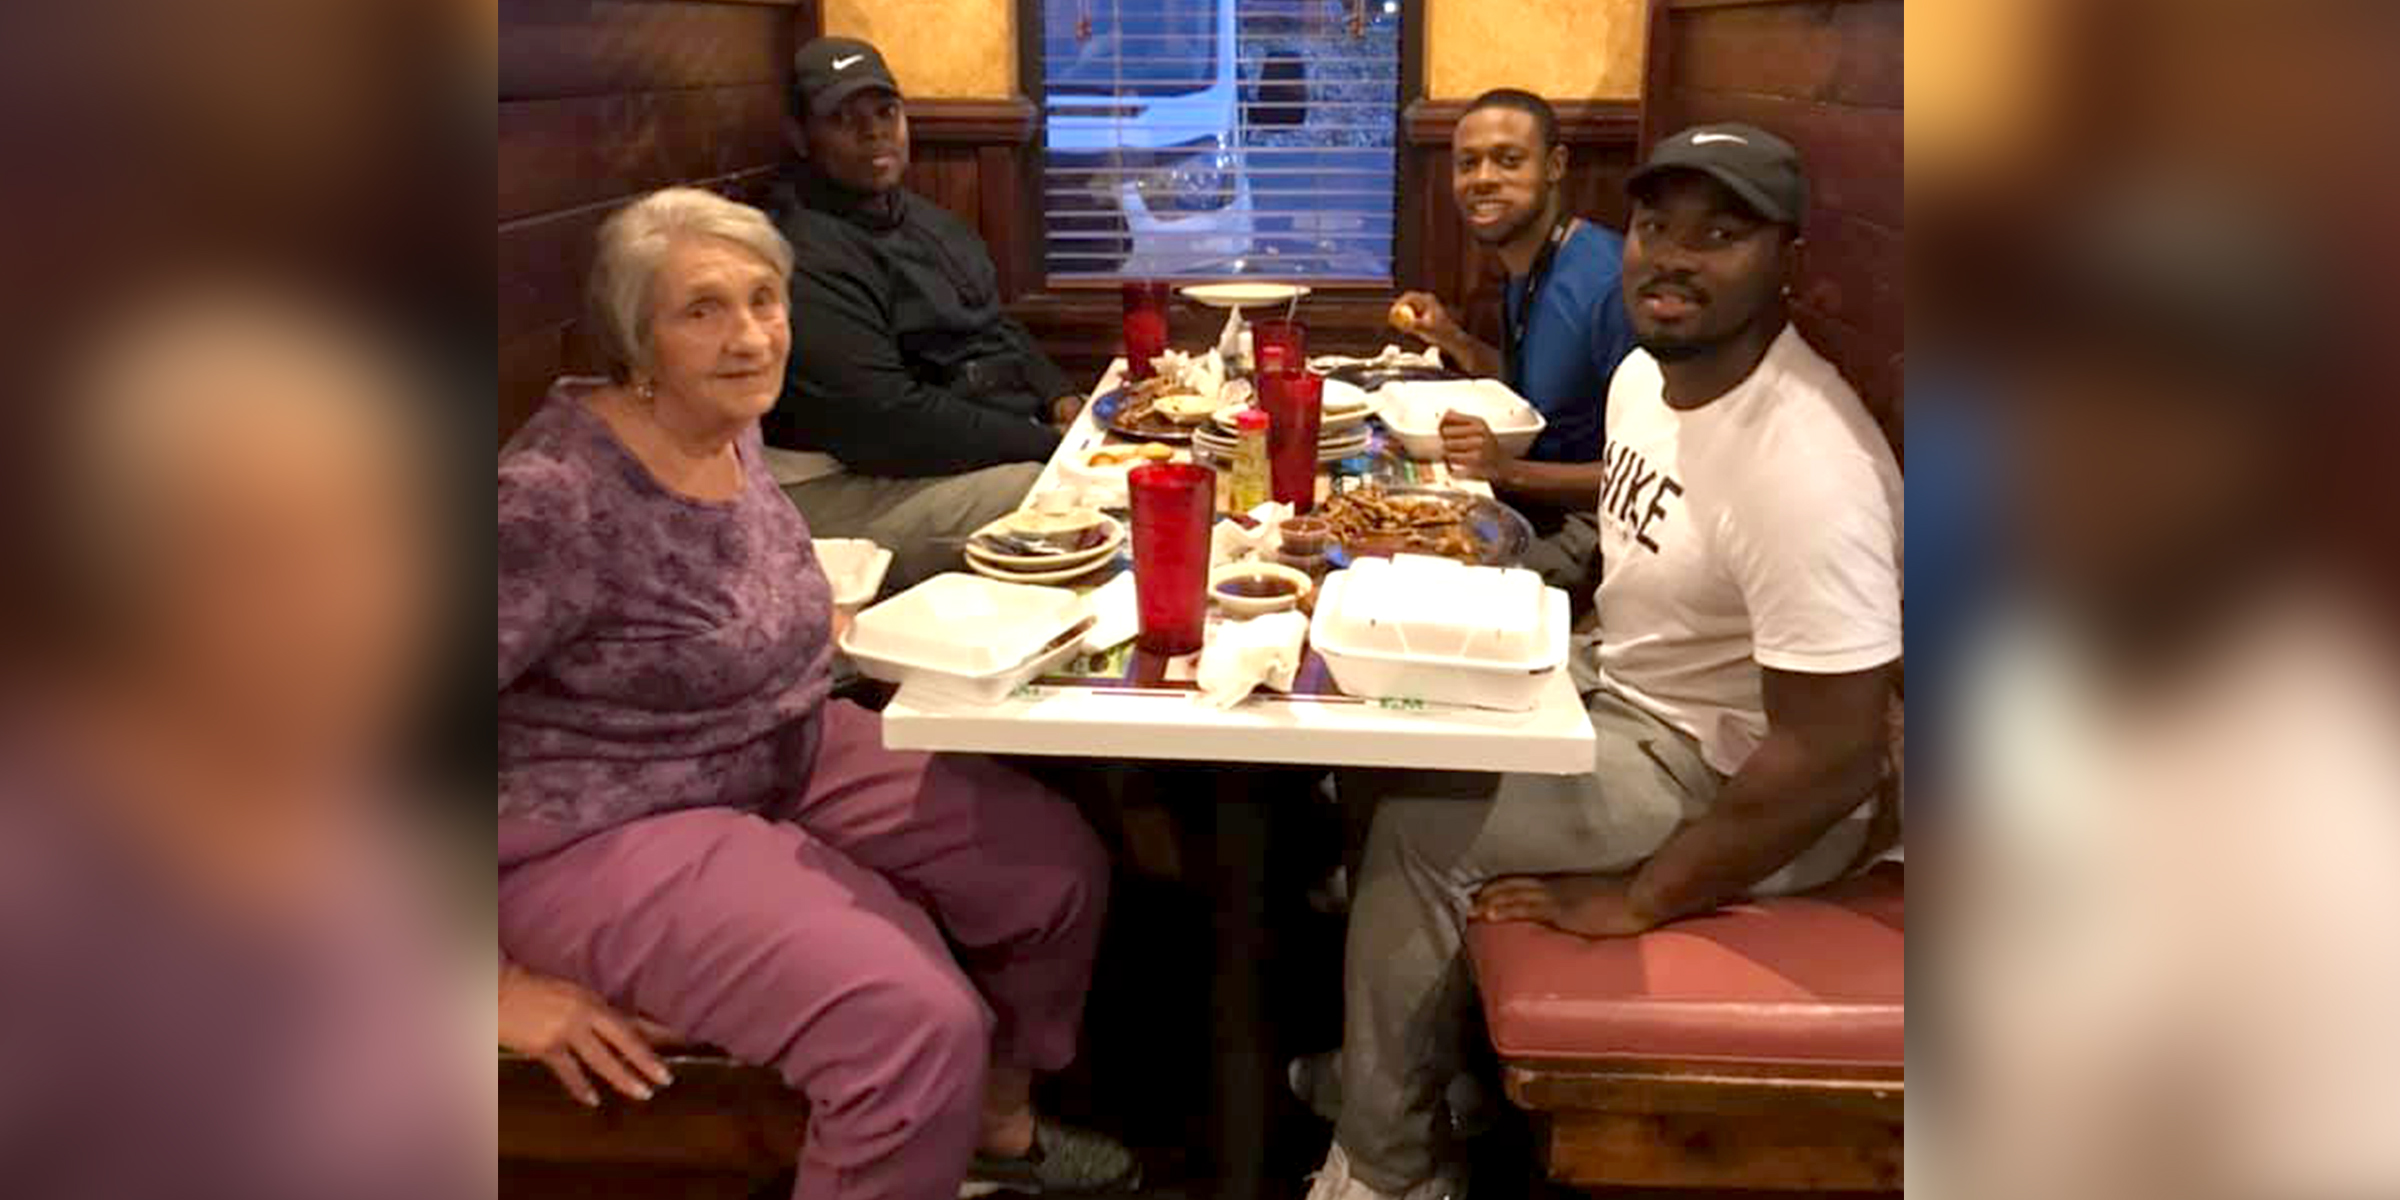 Widow was dining alone before anniversary — until these men stepped in